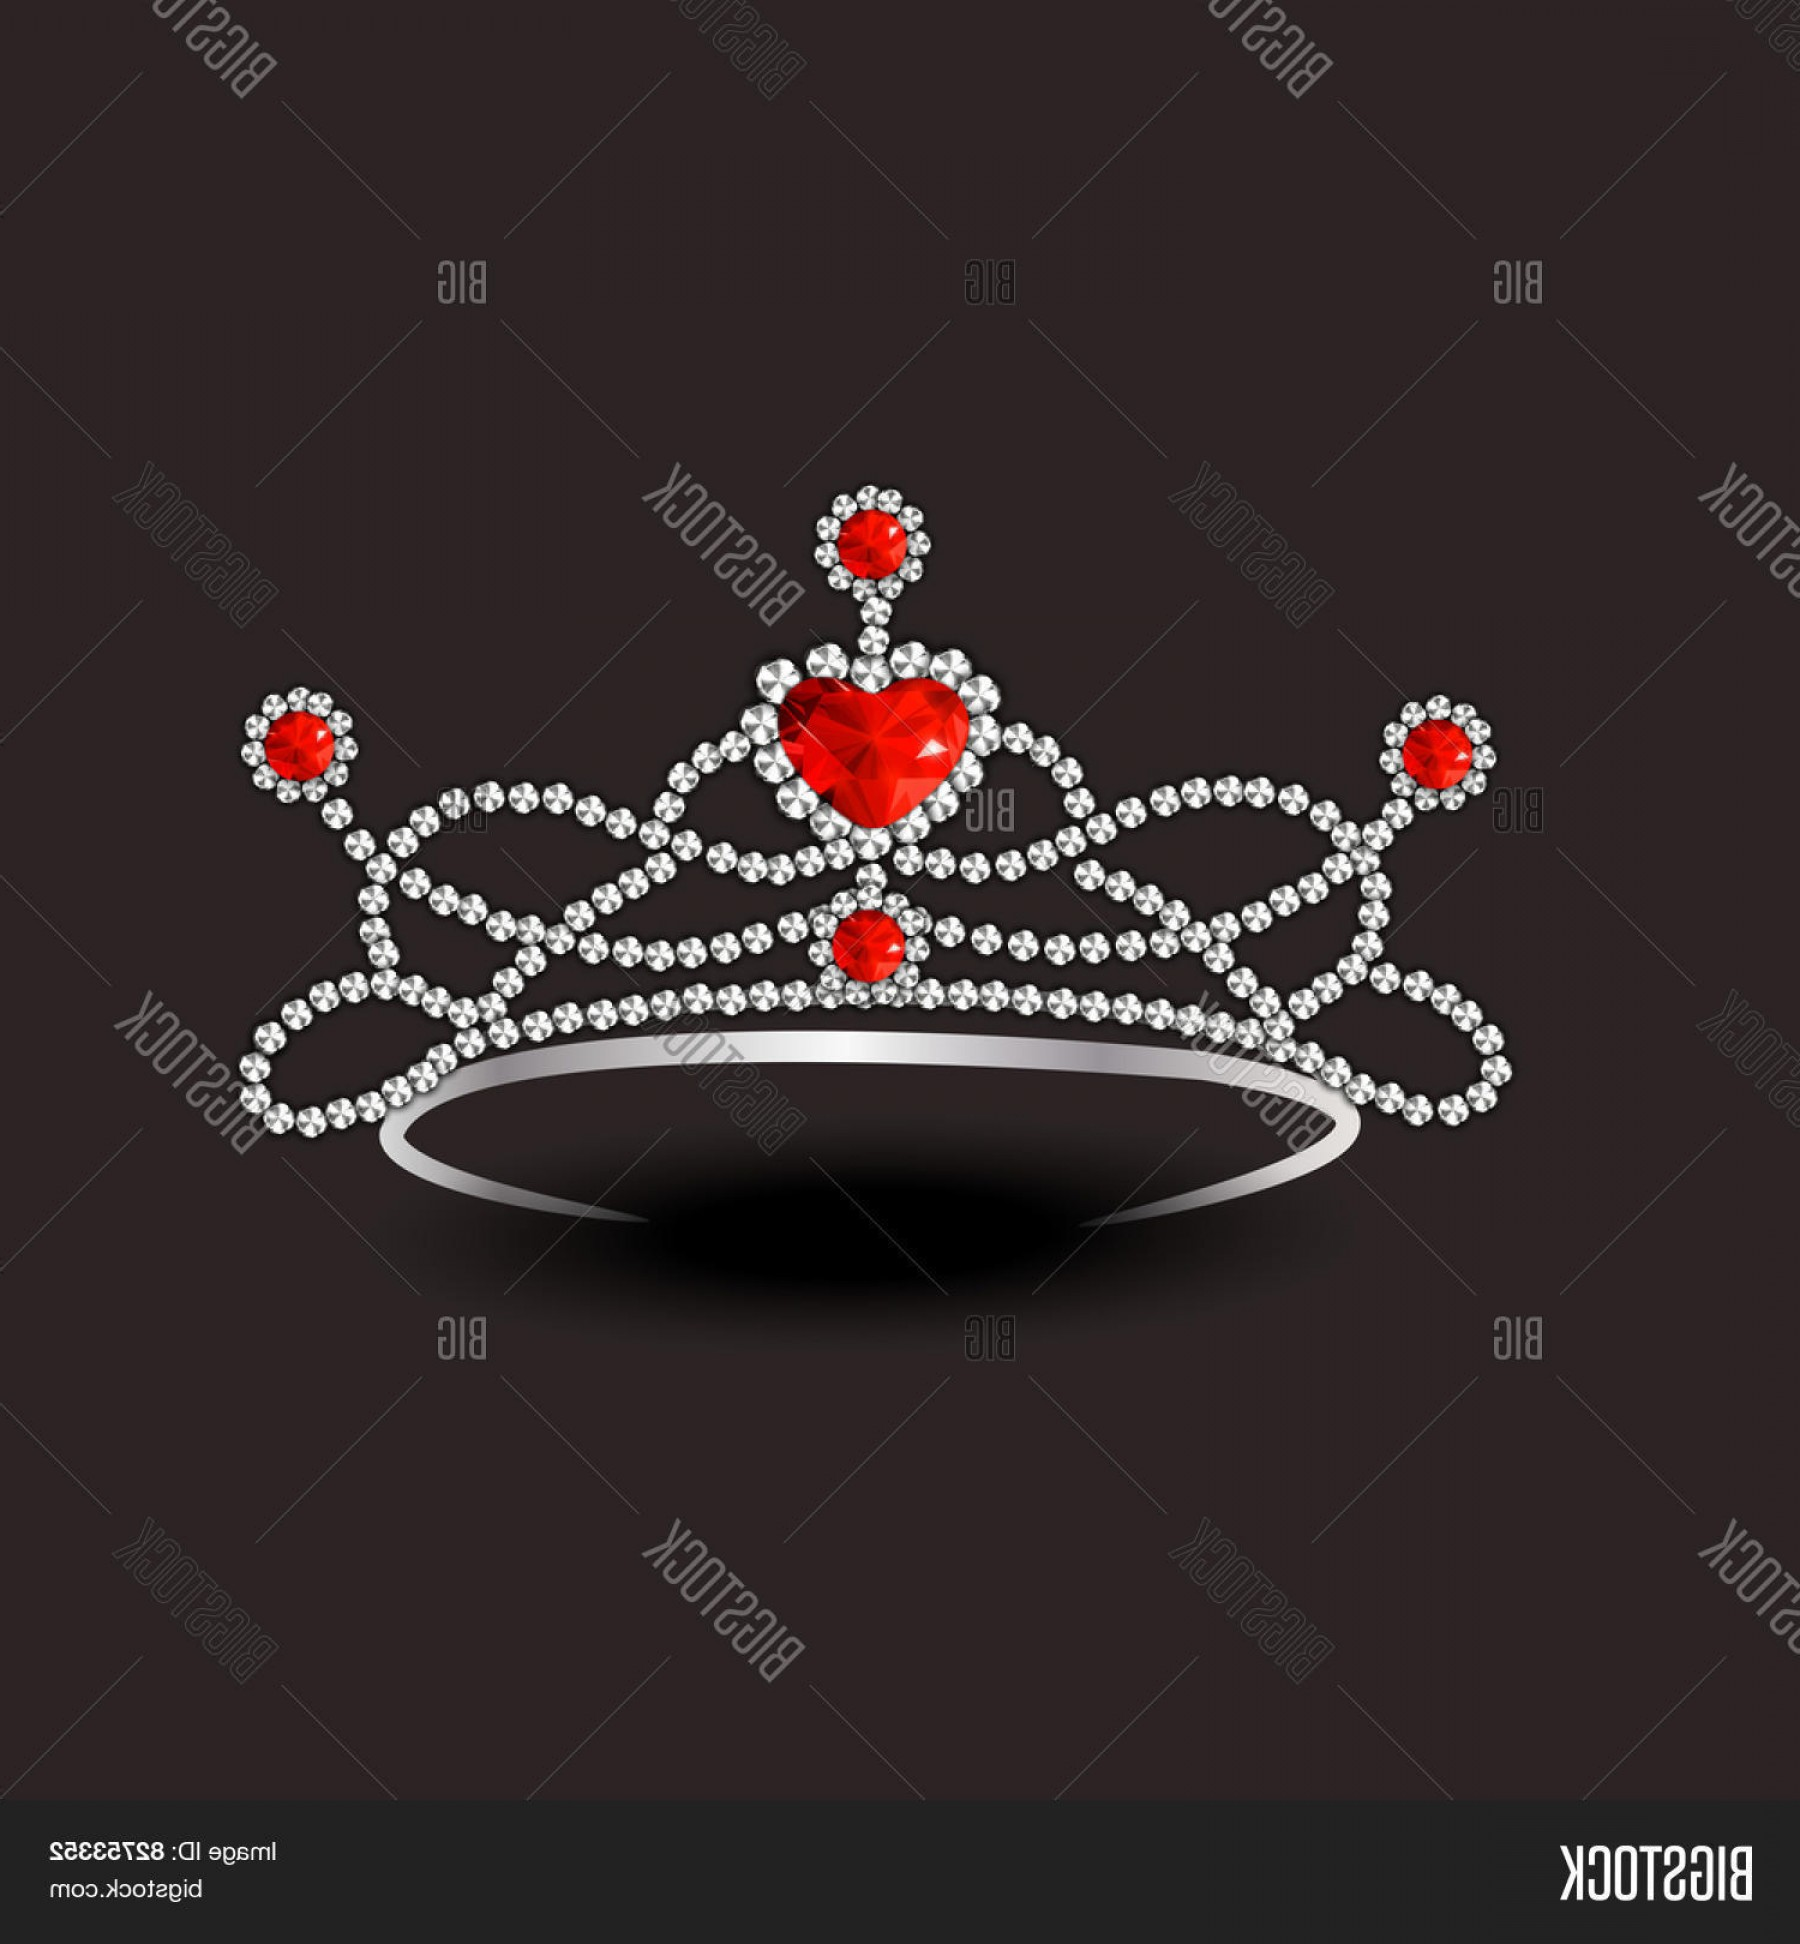 Pageant Tiaras Vector: Stock Vector Beautiful Stylish Diamond Tiara With Red Rubies On Dark Brown Background